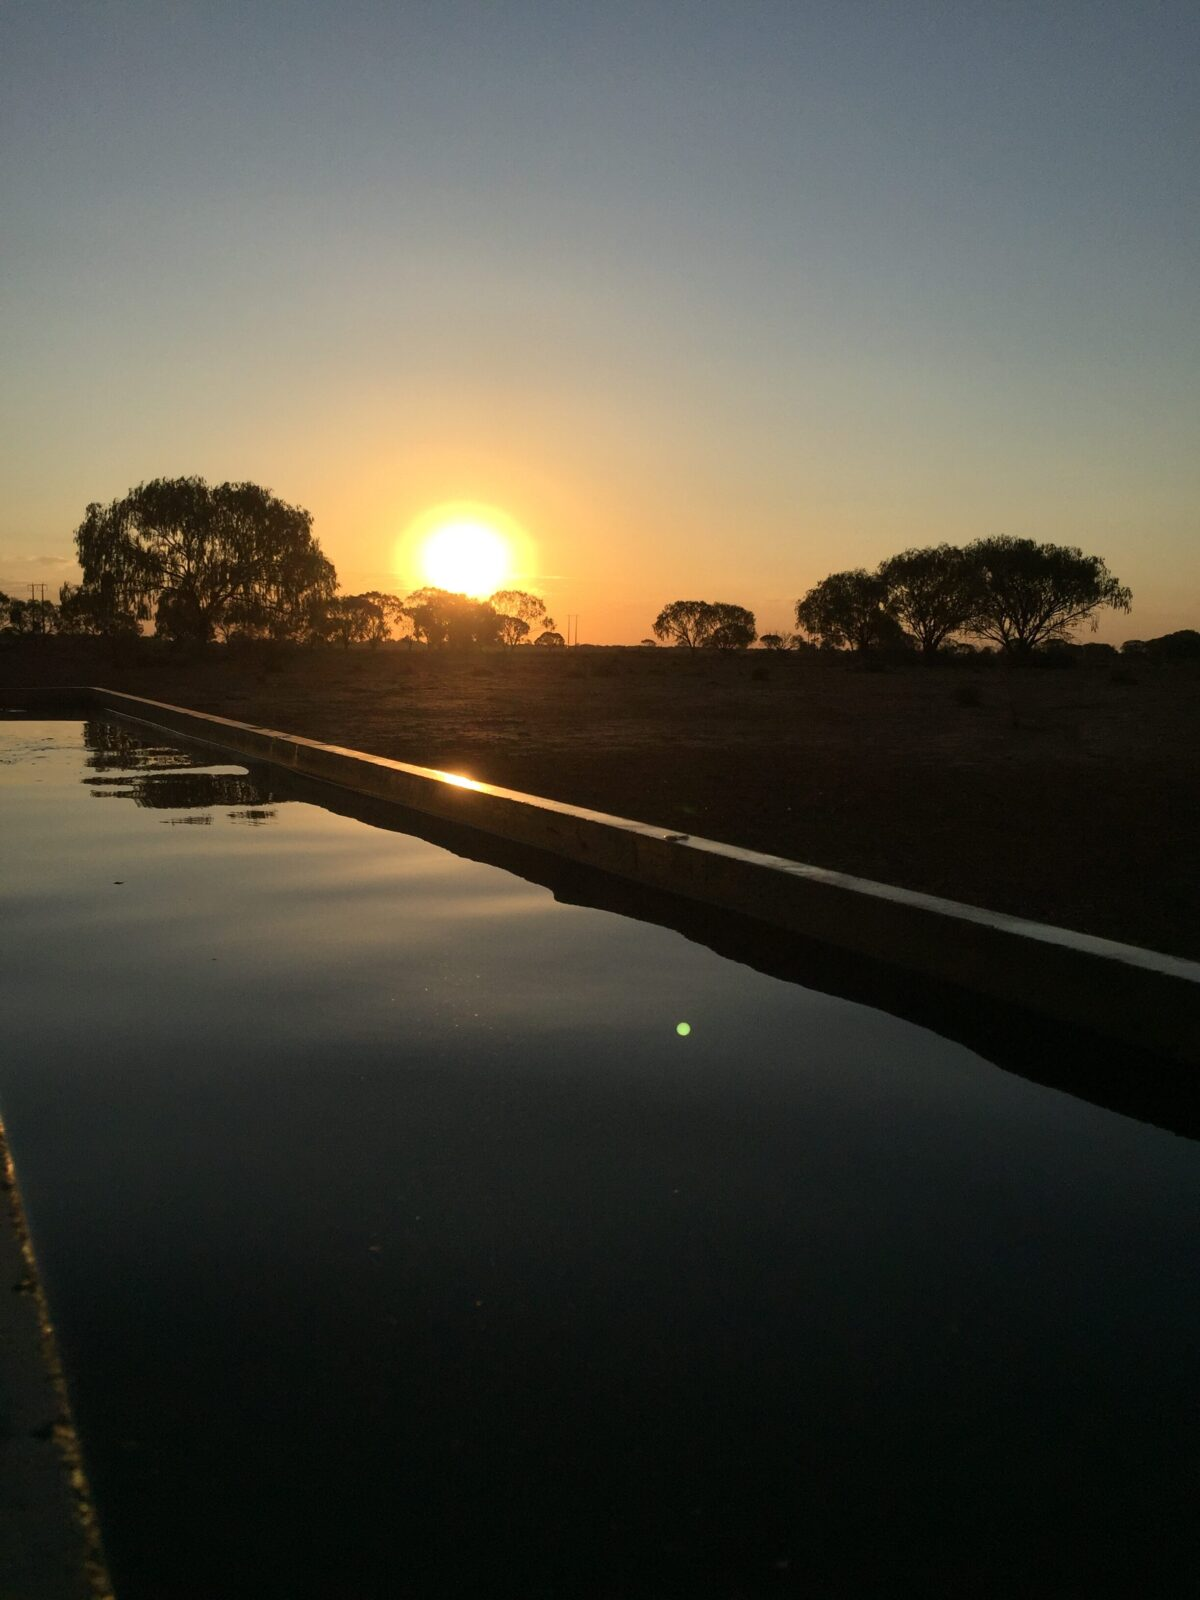 Tom Maxey_Sunset reflecting in trough_12-18